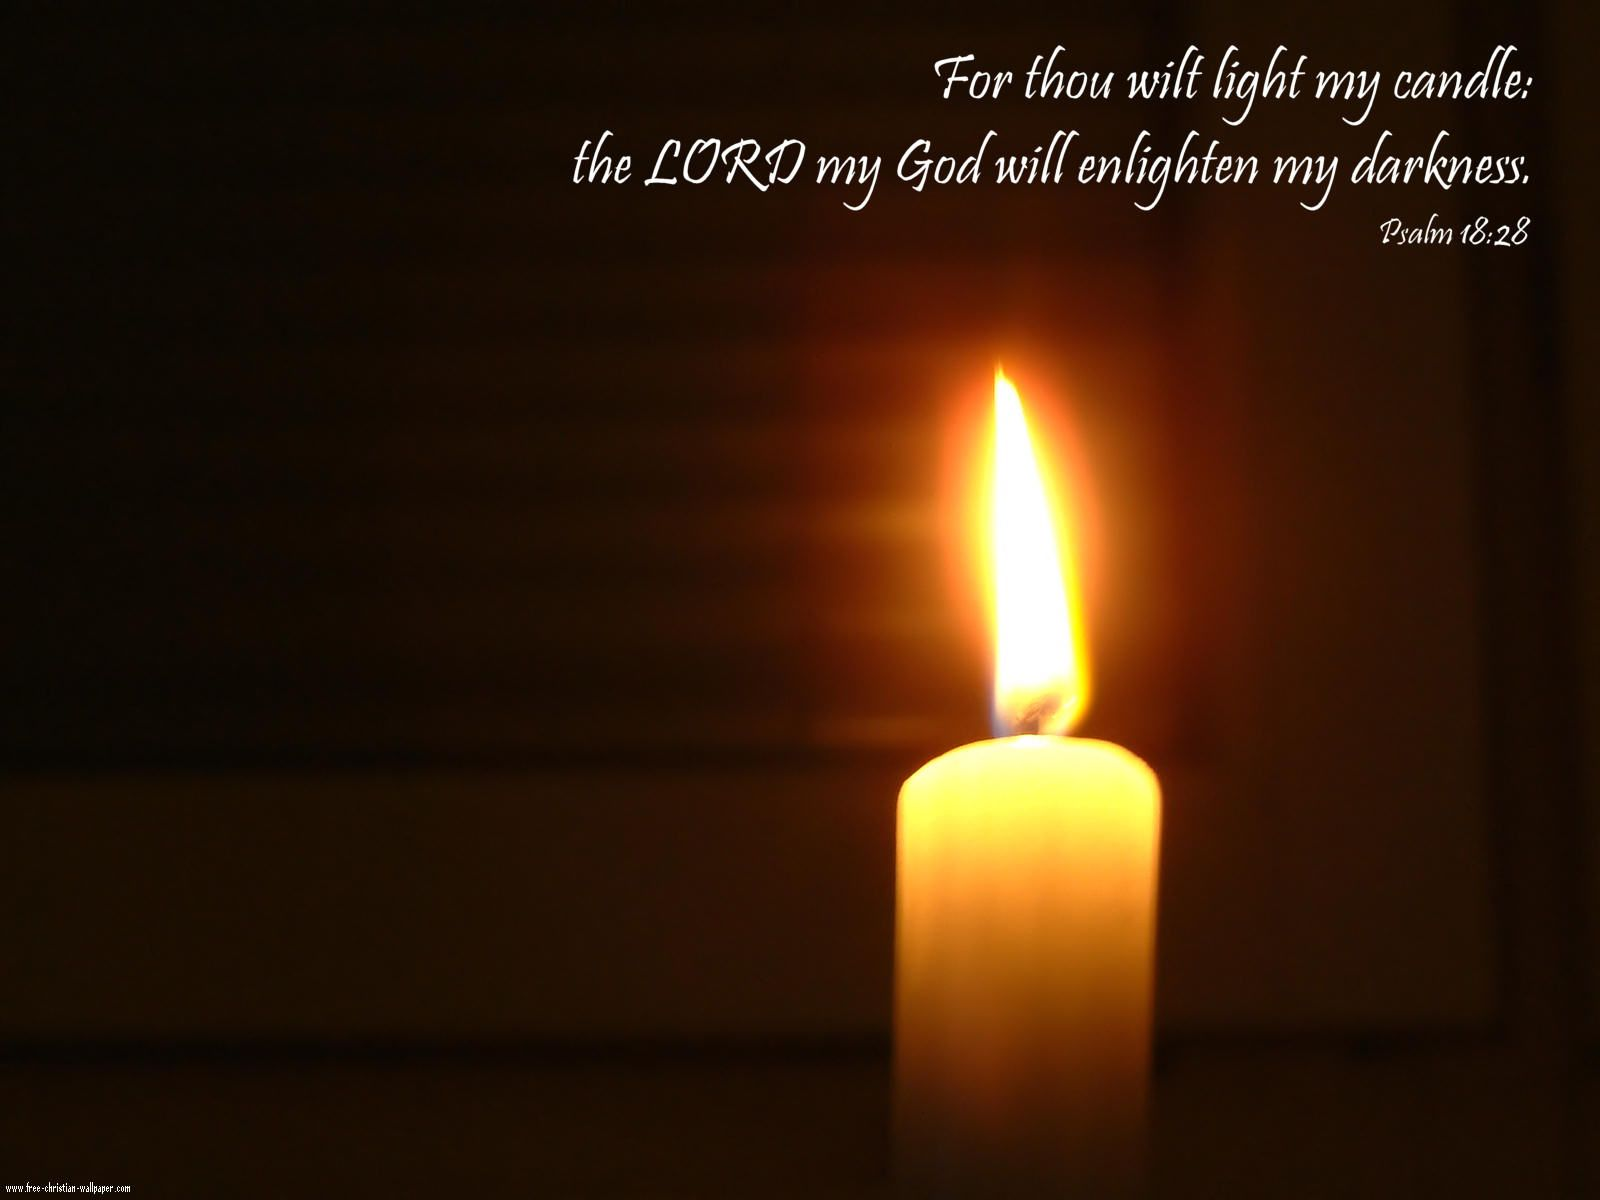 psalm for thou wilt light my candle the lord my god will enlighten my darkness